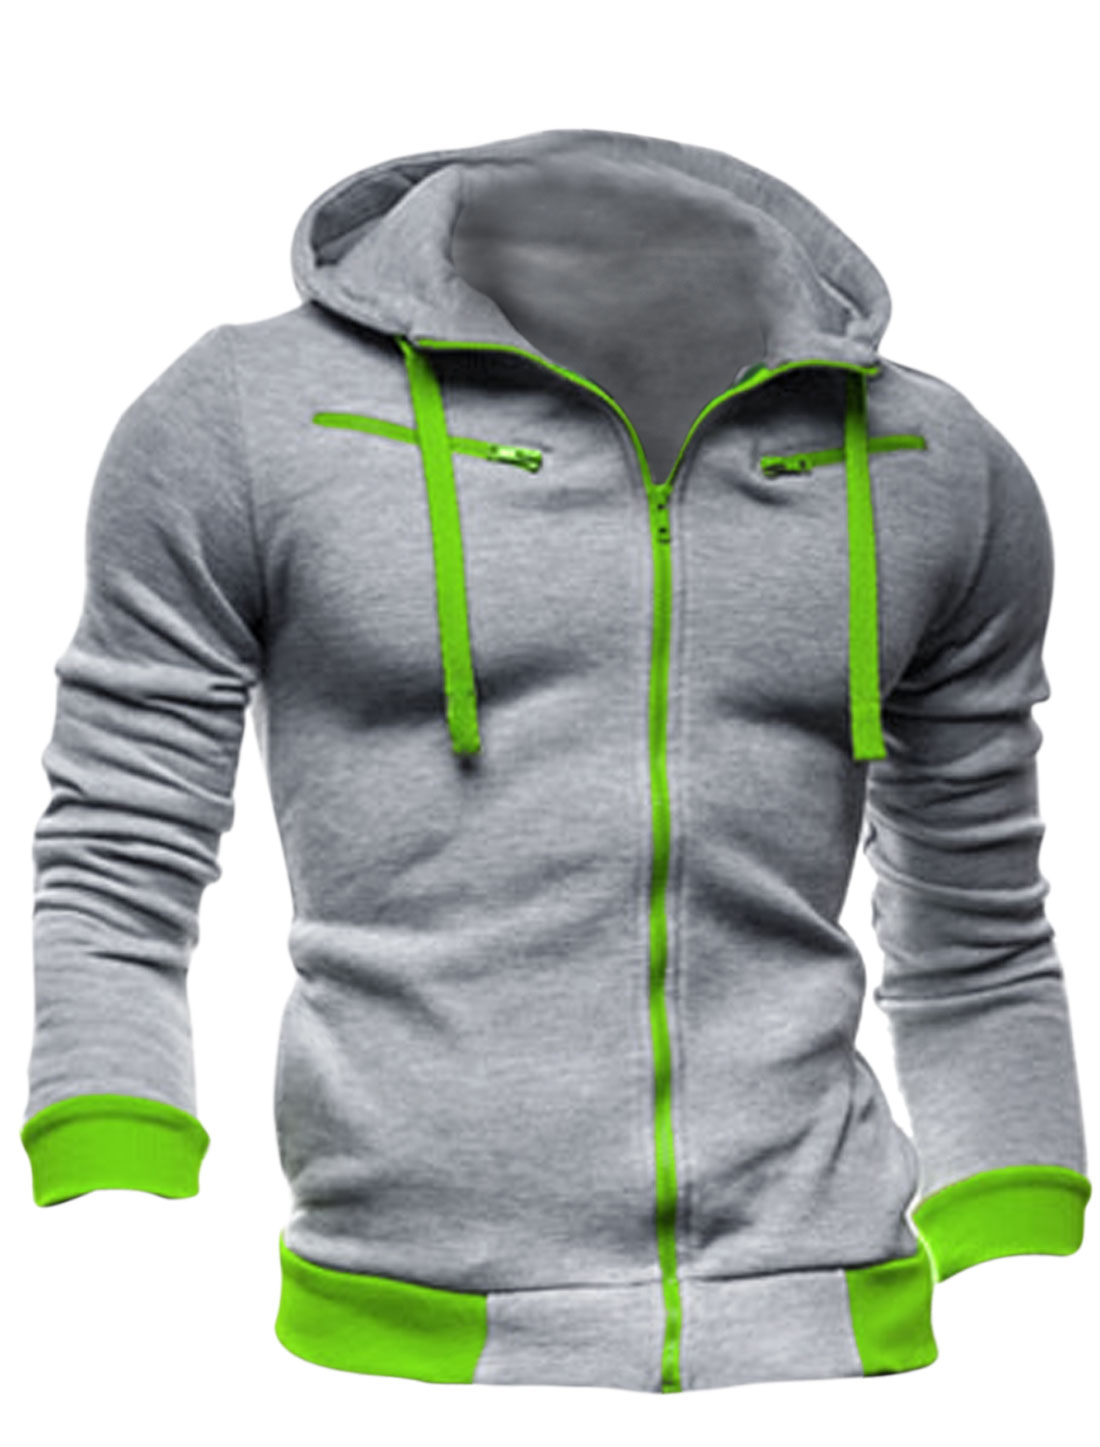 Men Full Zip Up Long Sleeve Fleece Inside Hoodie Jacket Light Gray M